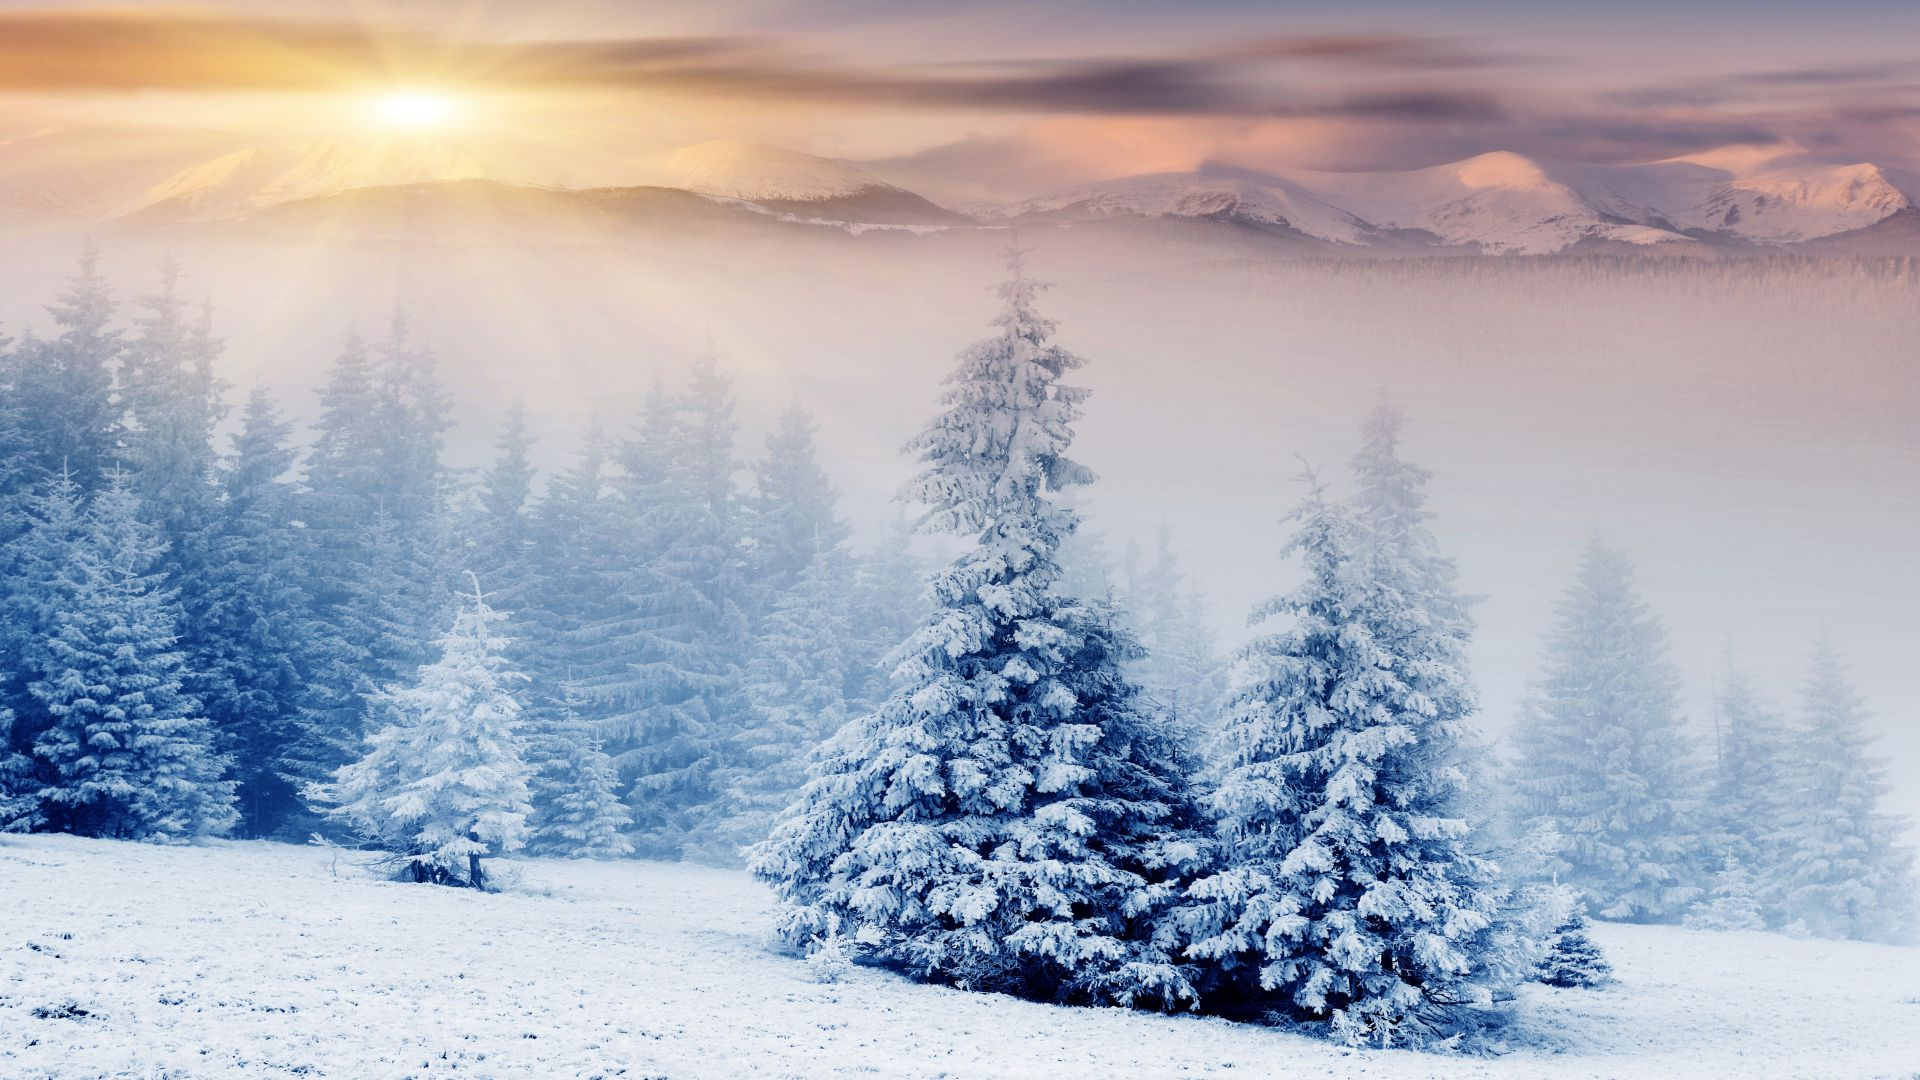 wallpaper trees, 5k, 4k wallpaper, pines, mountains, snow, winter